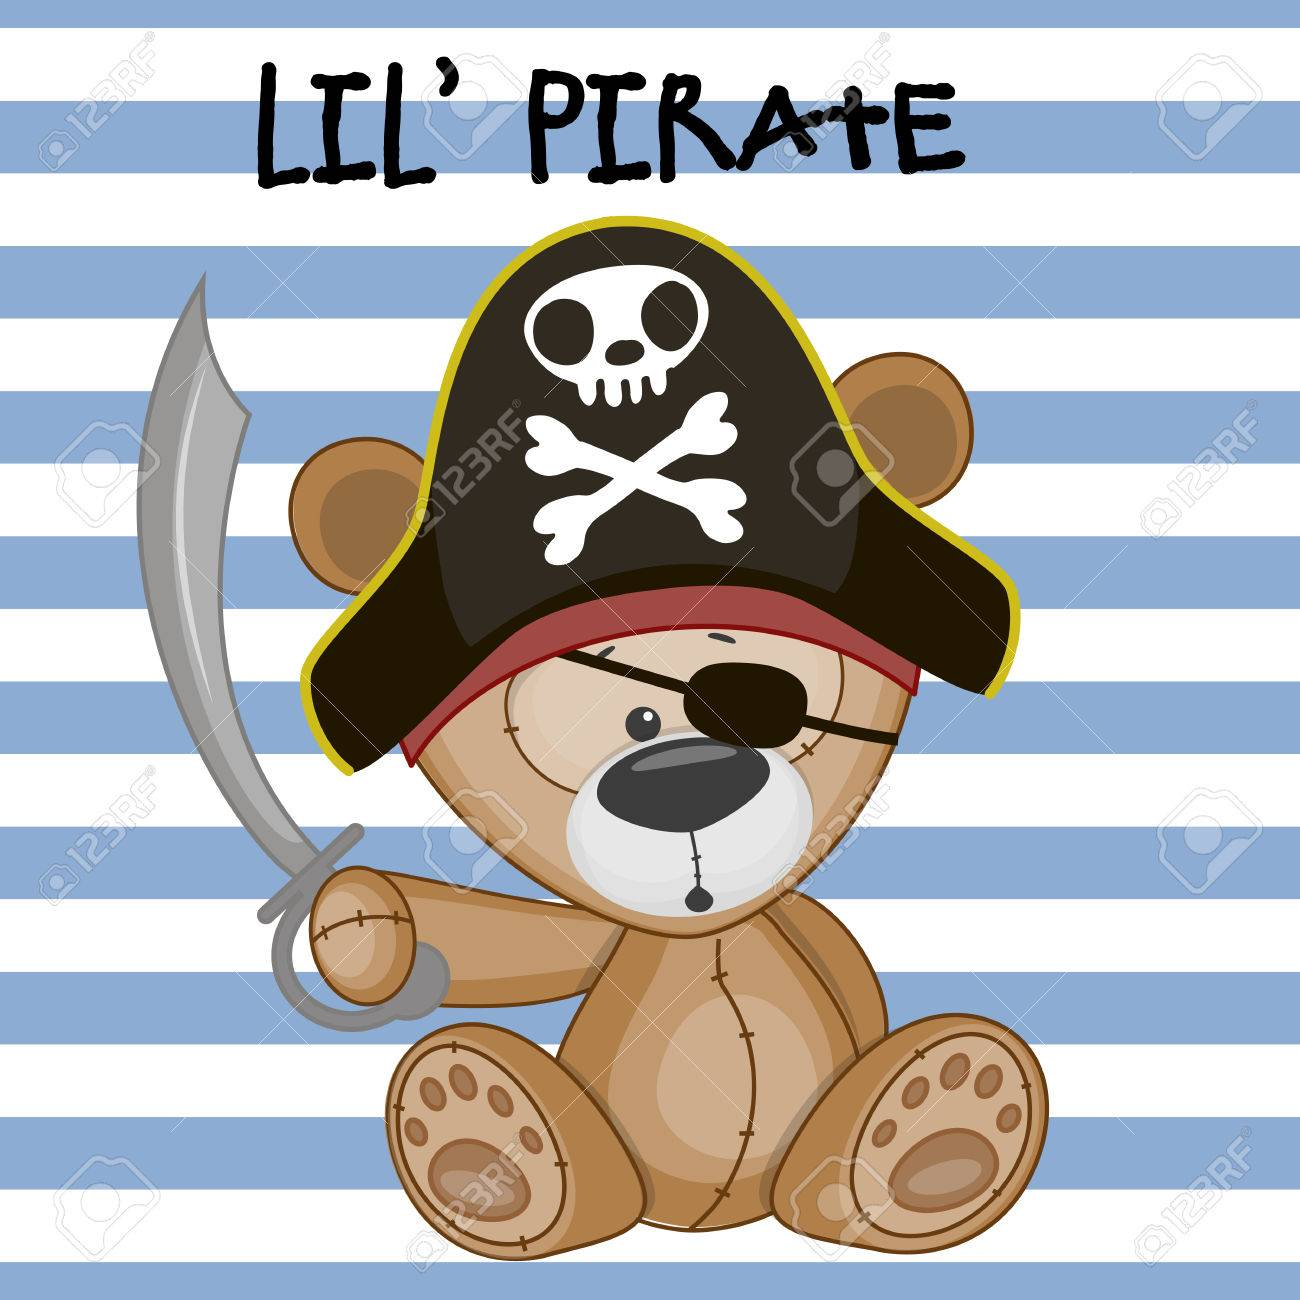 Cute Cartoon Teddy Bear In A Pirate Hat Royalty Free Cliparts, Vectors, And  Stock Illustration. Image 38998987.